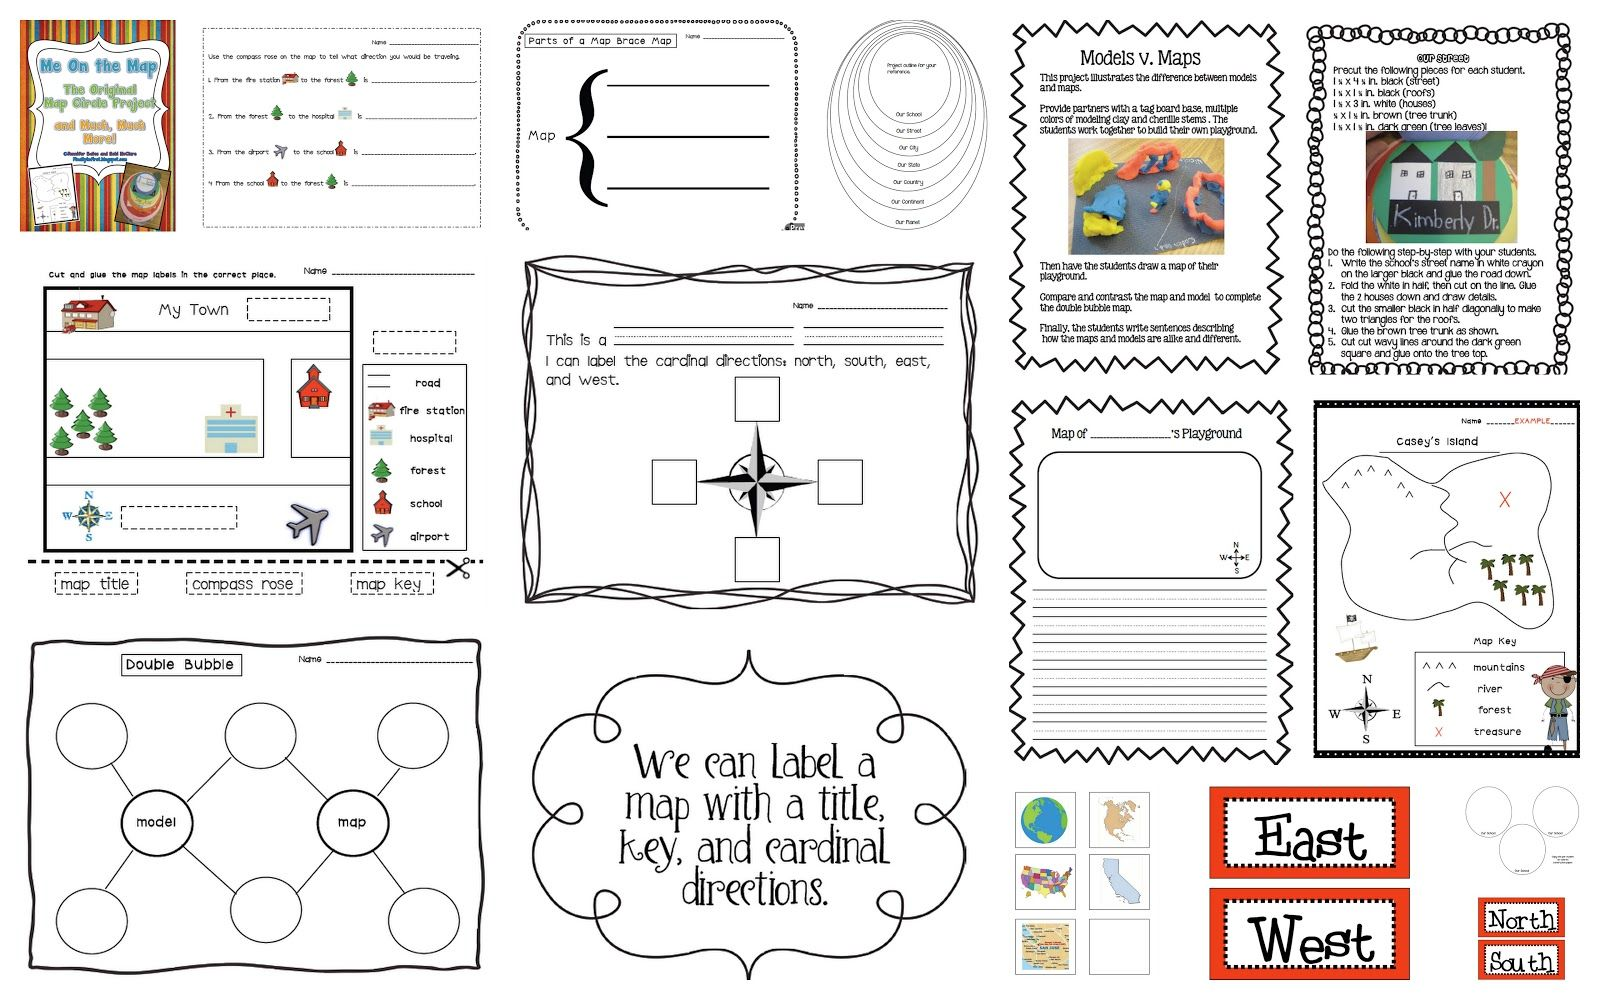 Cardinal Directions Worksheets 1st Grade - Worksheet Pages printable worksheets, alphabet worksheets, grade worksheets, worksheets for teachers, free worksheets, and math worksheets Cardinal Direction Worksheet 1000 x 1600